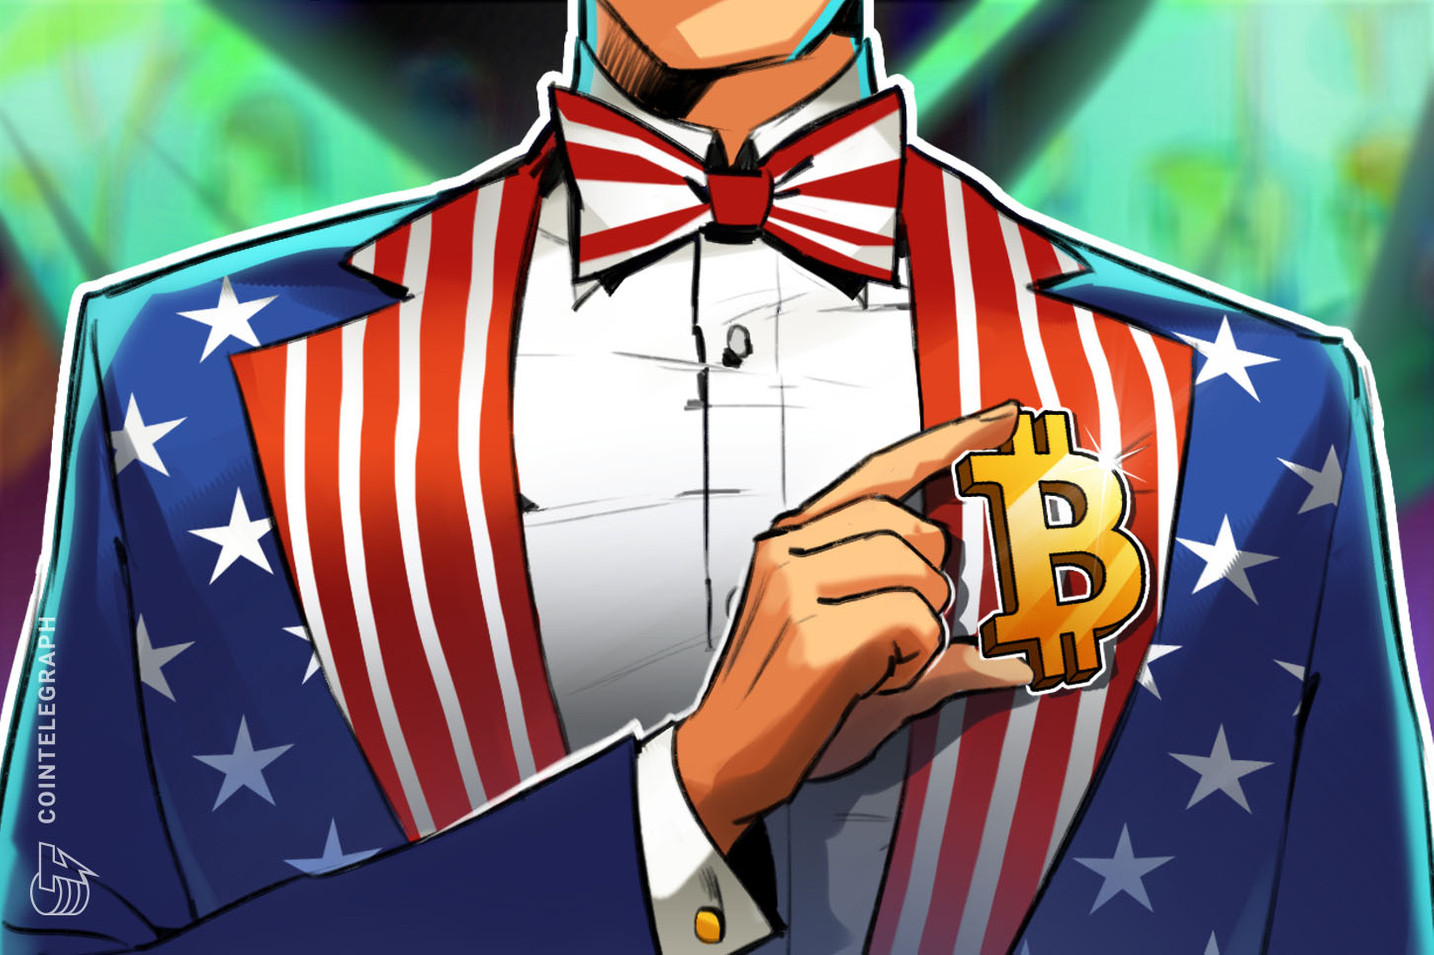 US Regulators' Approach to Crypto Is Obstructing Innovation: Ex-Congressman